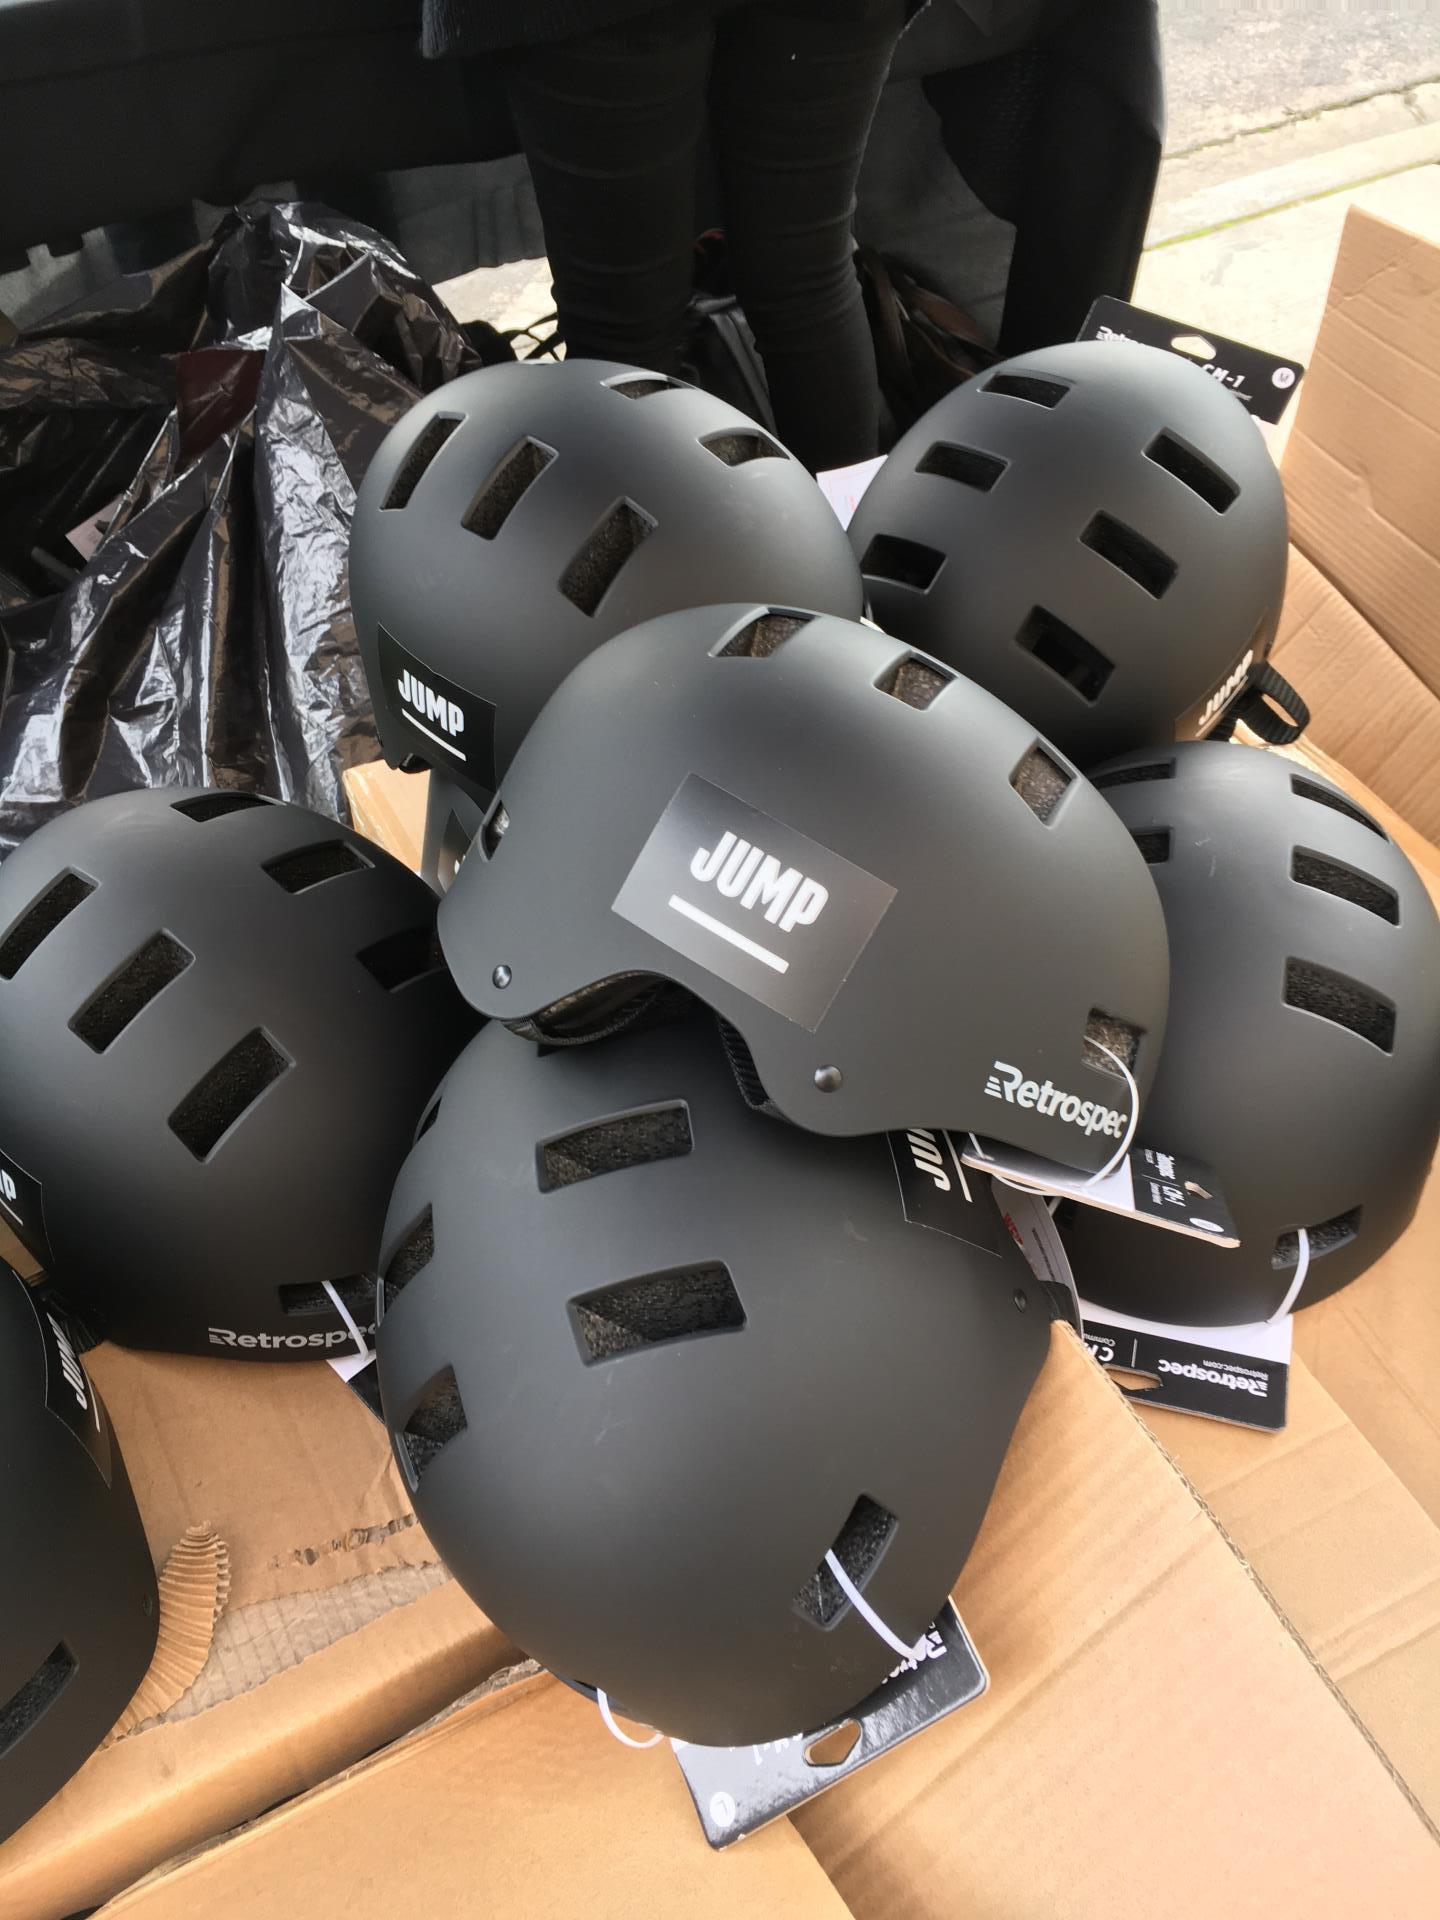 jump bike helmets for the jan 8th giveaway at the barn